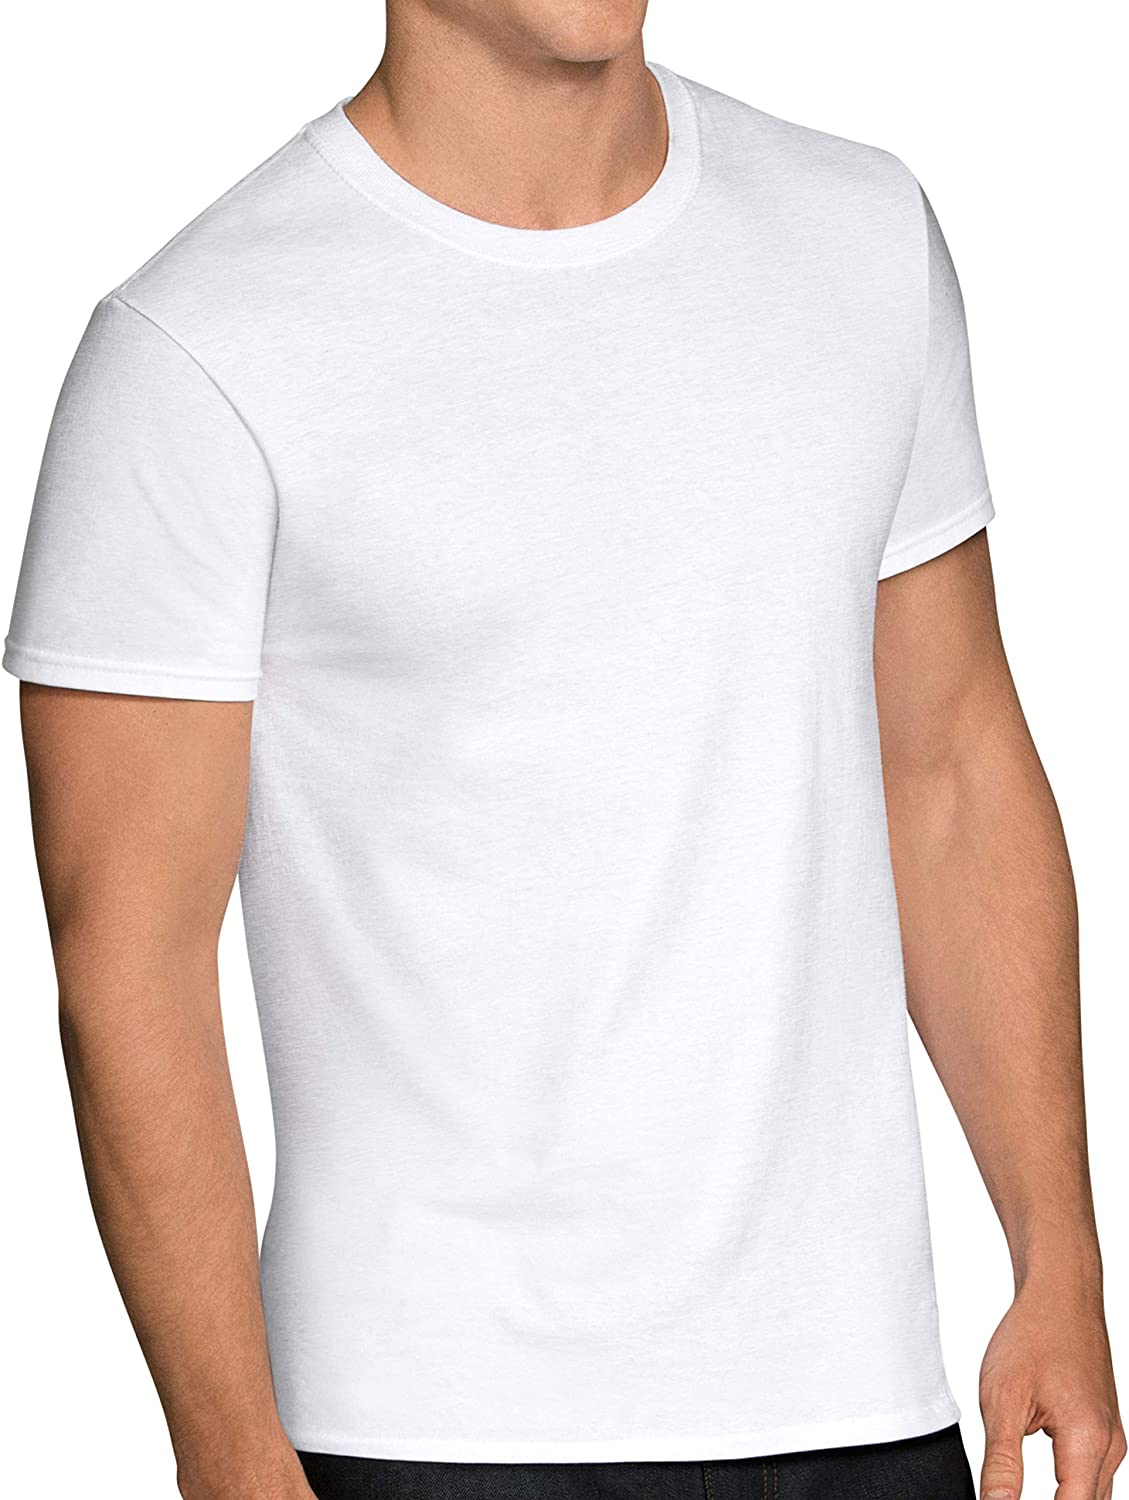 Fruit of the Loom Men's Stay Tucked Crew T-Shirt |